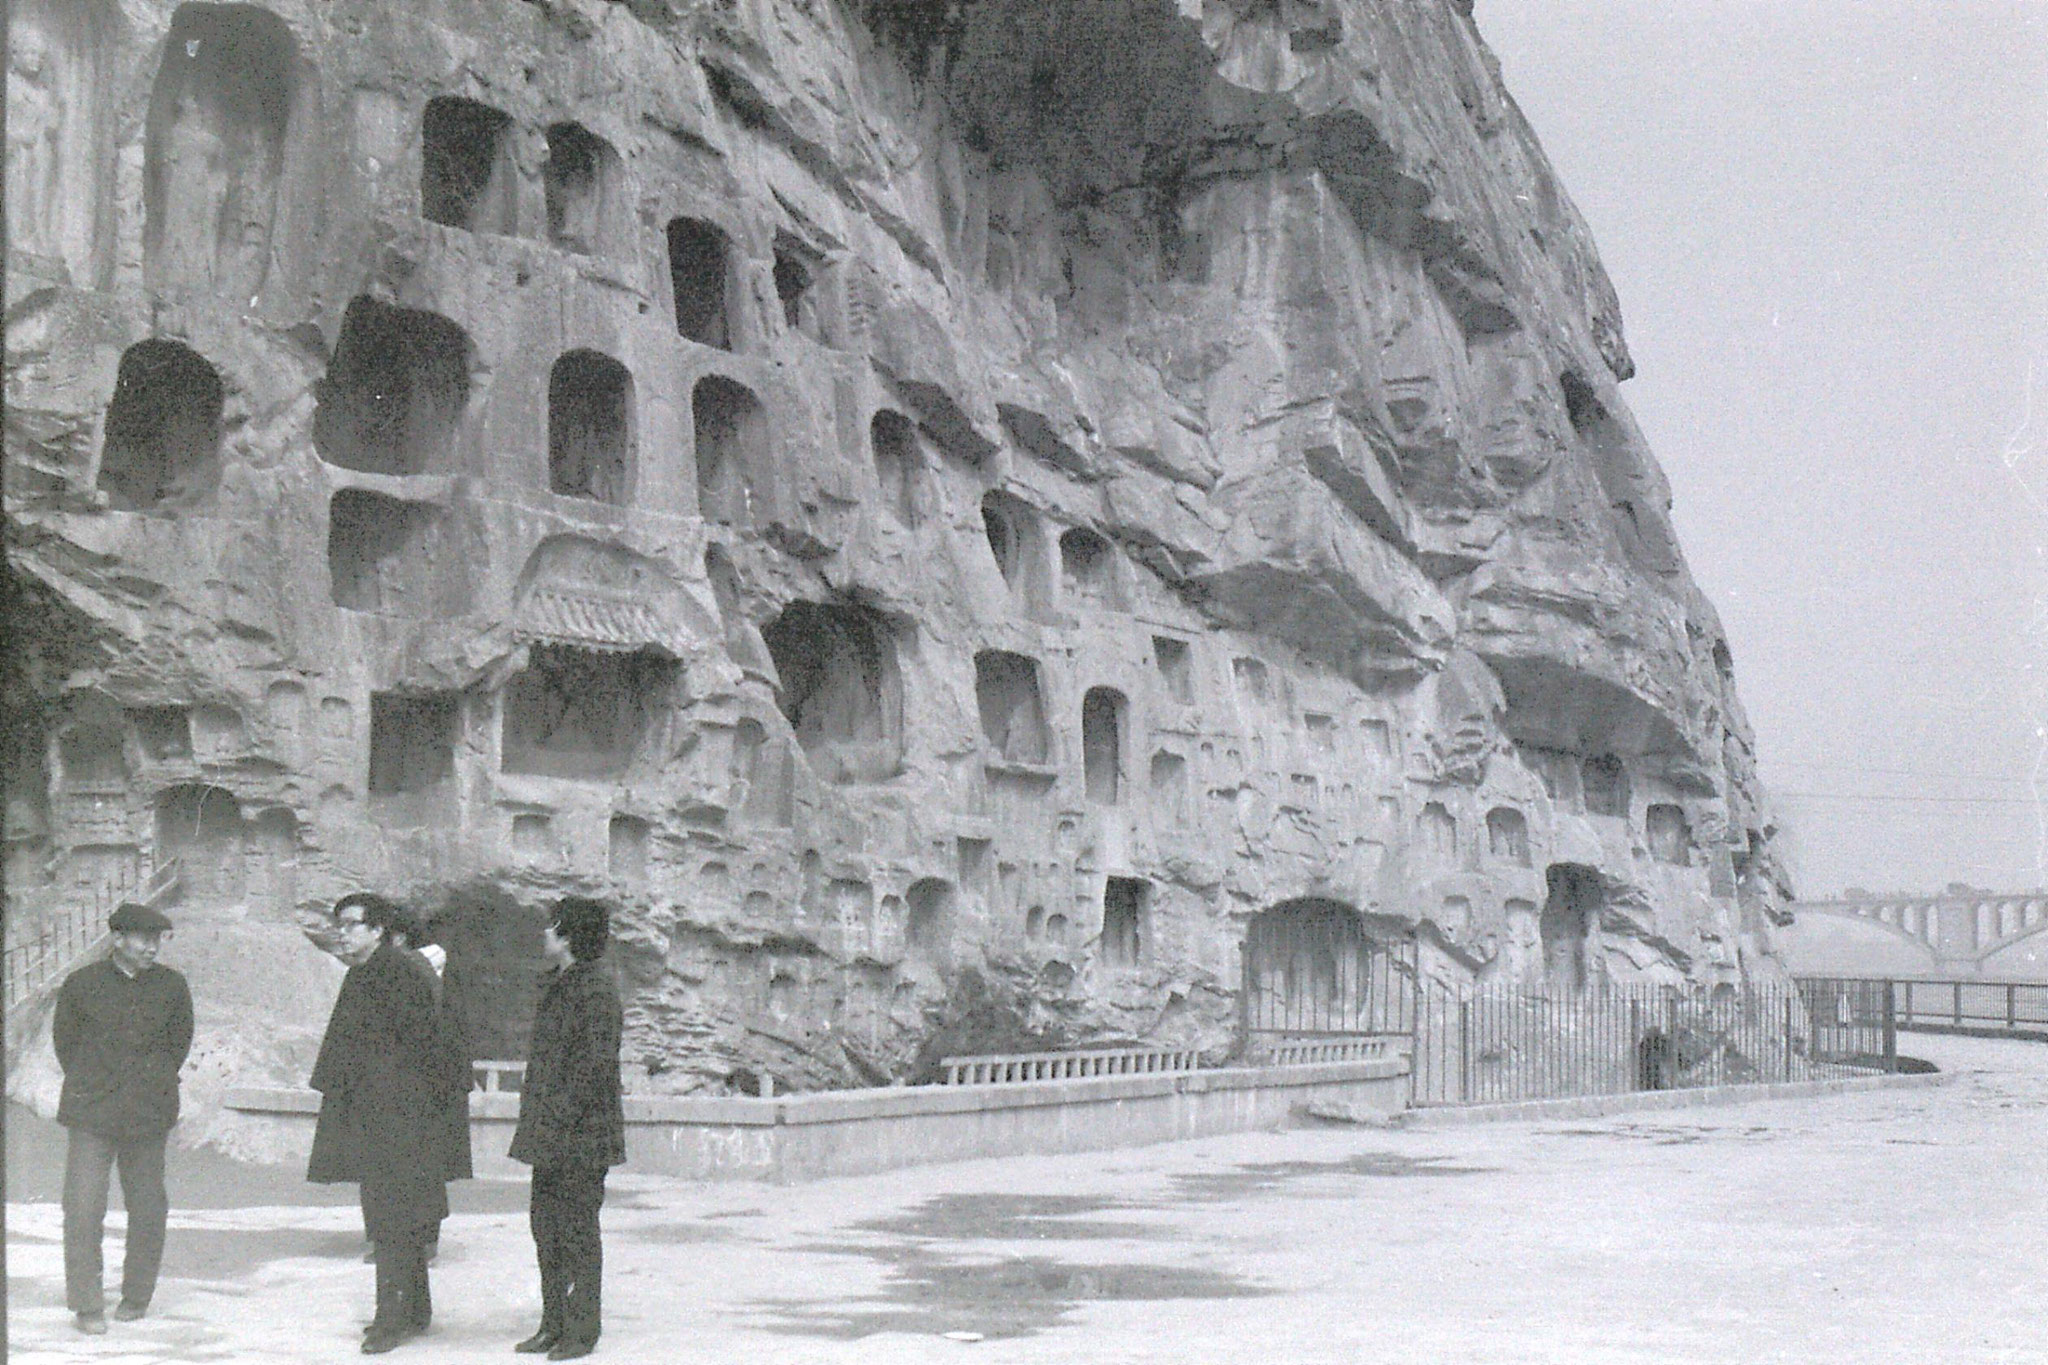 28/2/1989: 8: Luoyang Longmen Caves cliff face